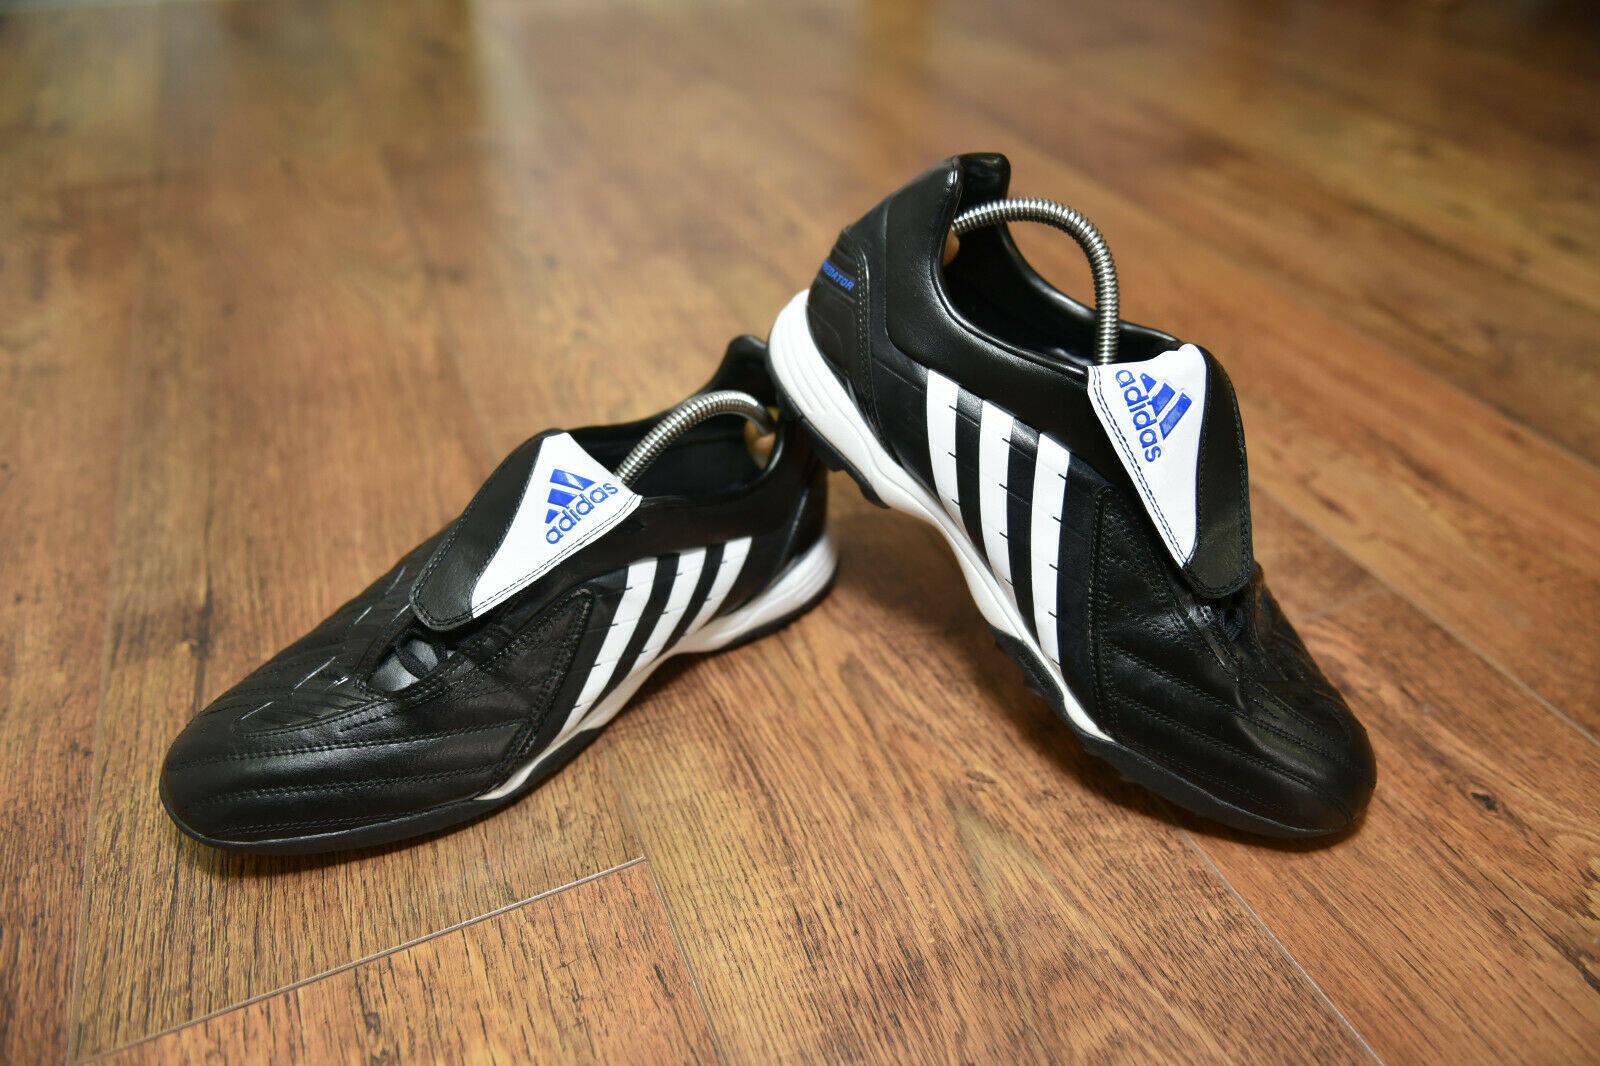 Adidas Protator Powerswerve Astro Turf Football Stiefel Trainers UK 10 Pulse VGC